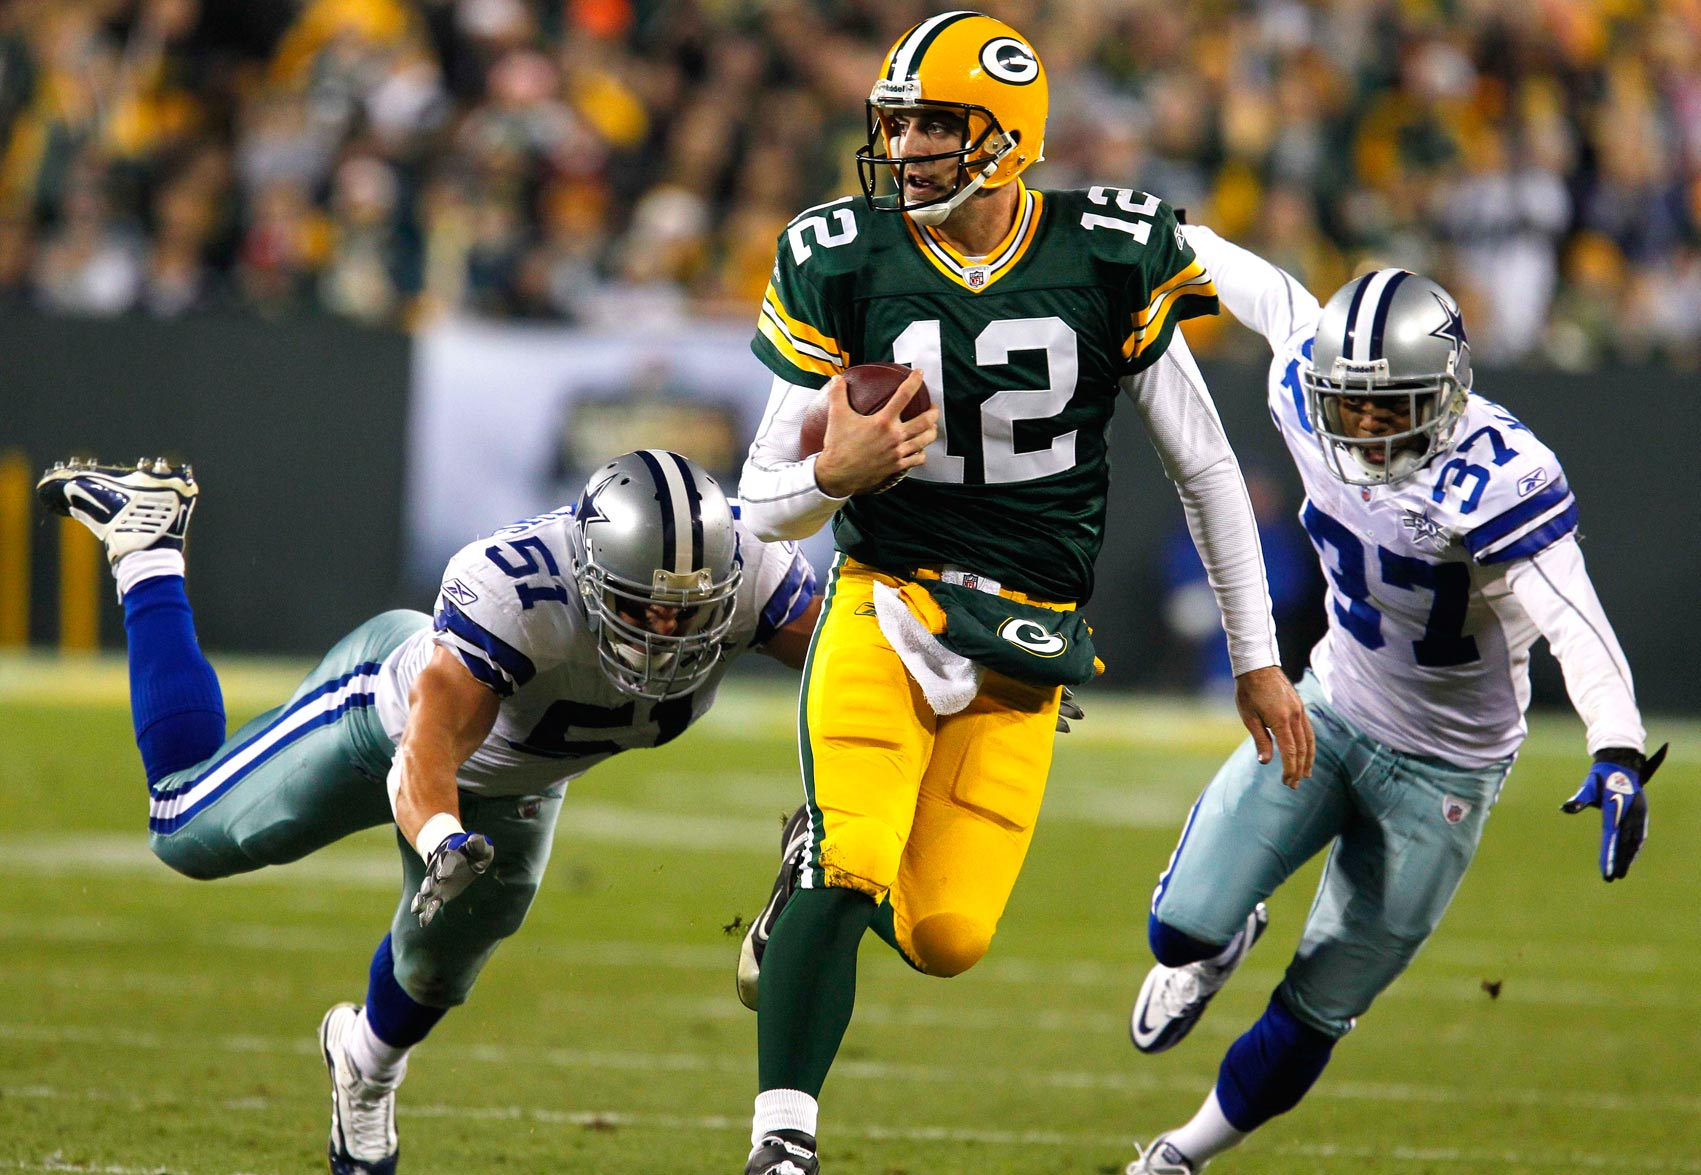 We old souls find that Rodgers' playoff play is similar to Roger's (Staubach's, that is)